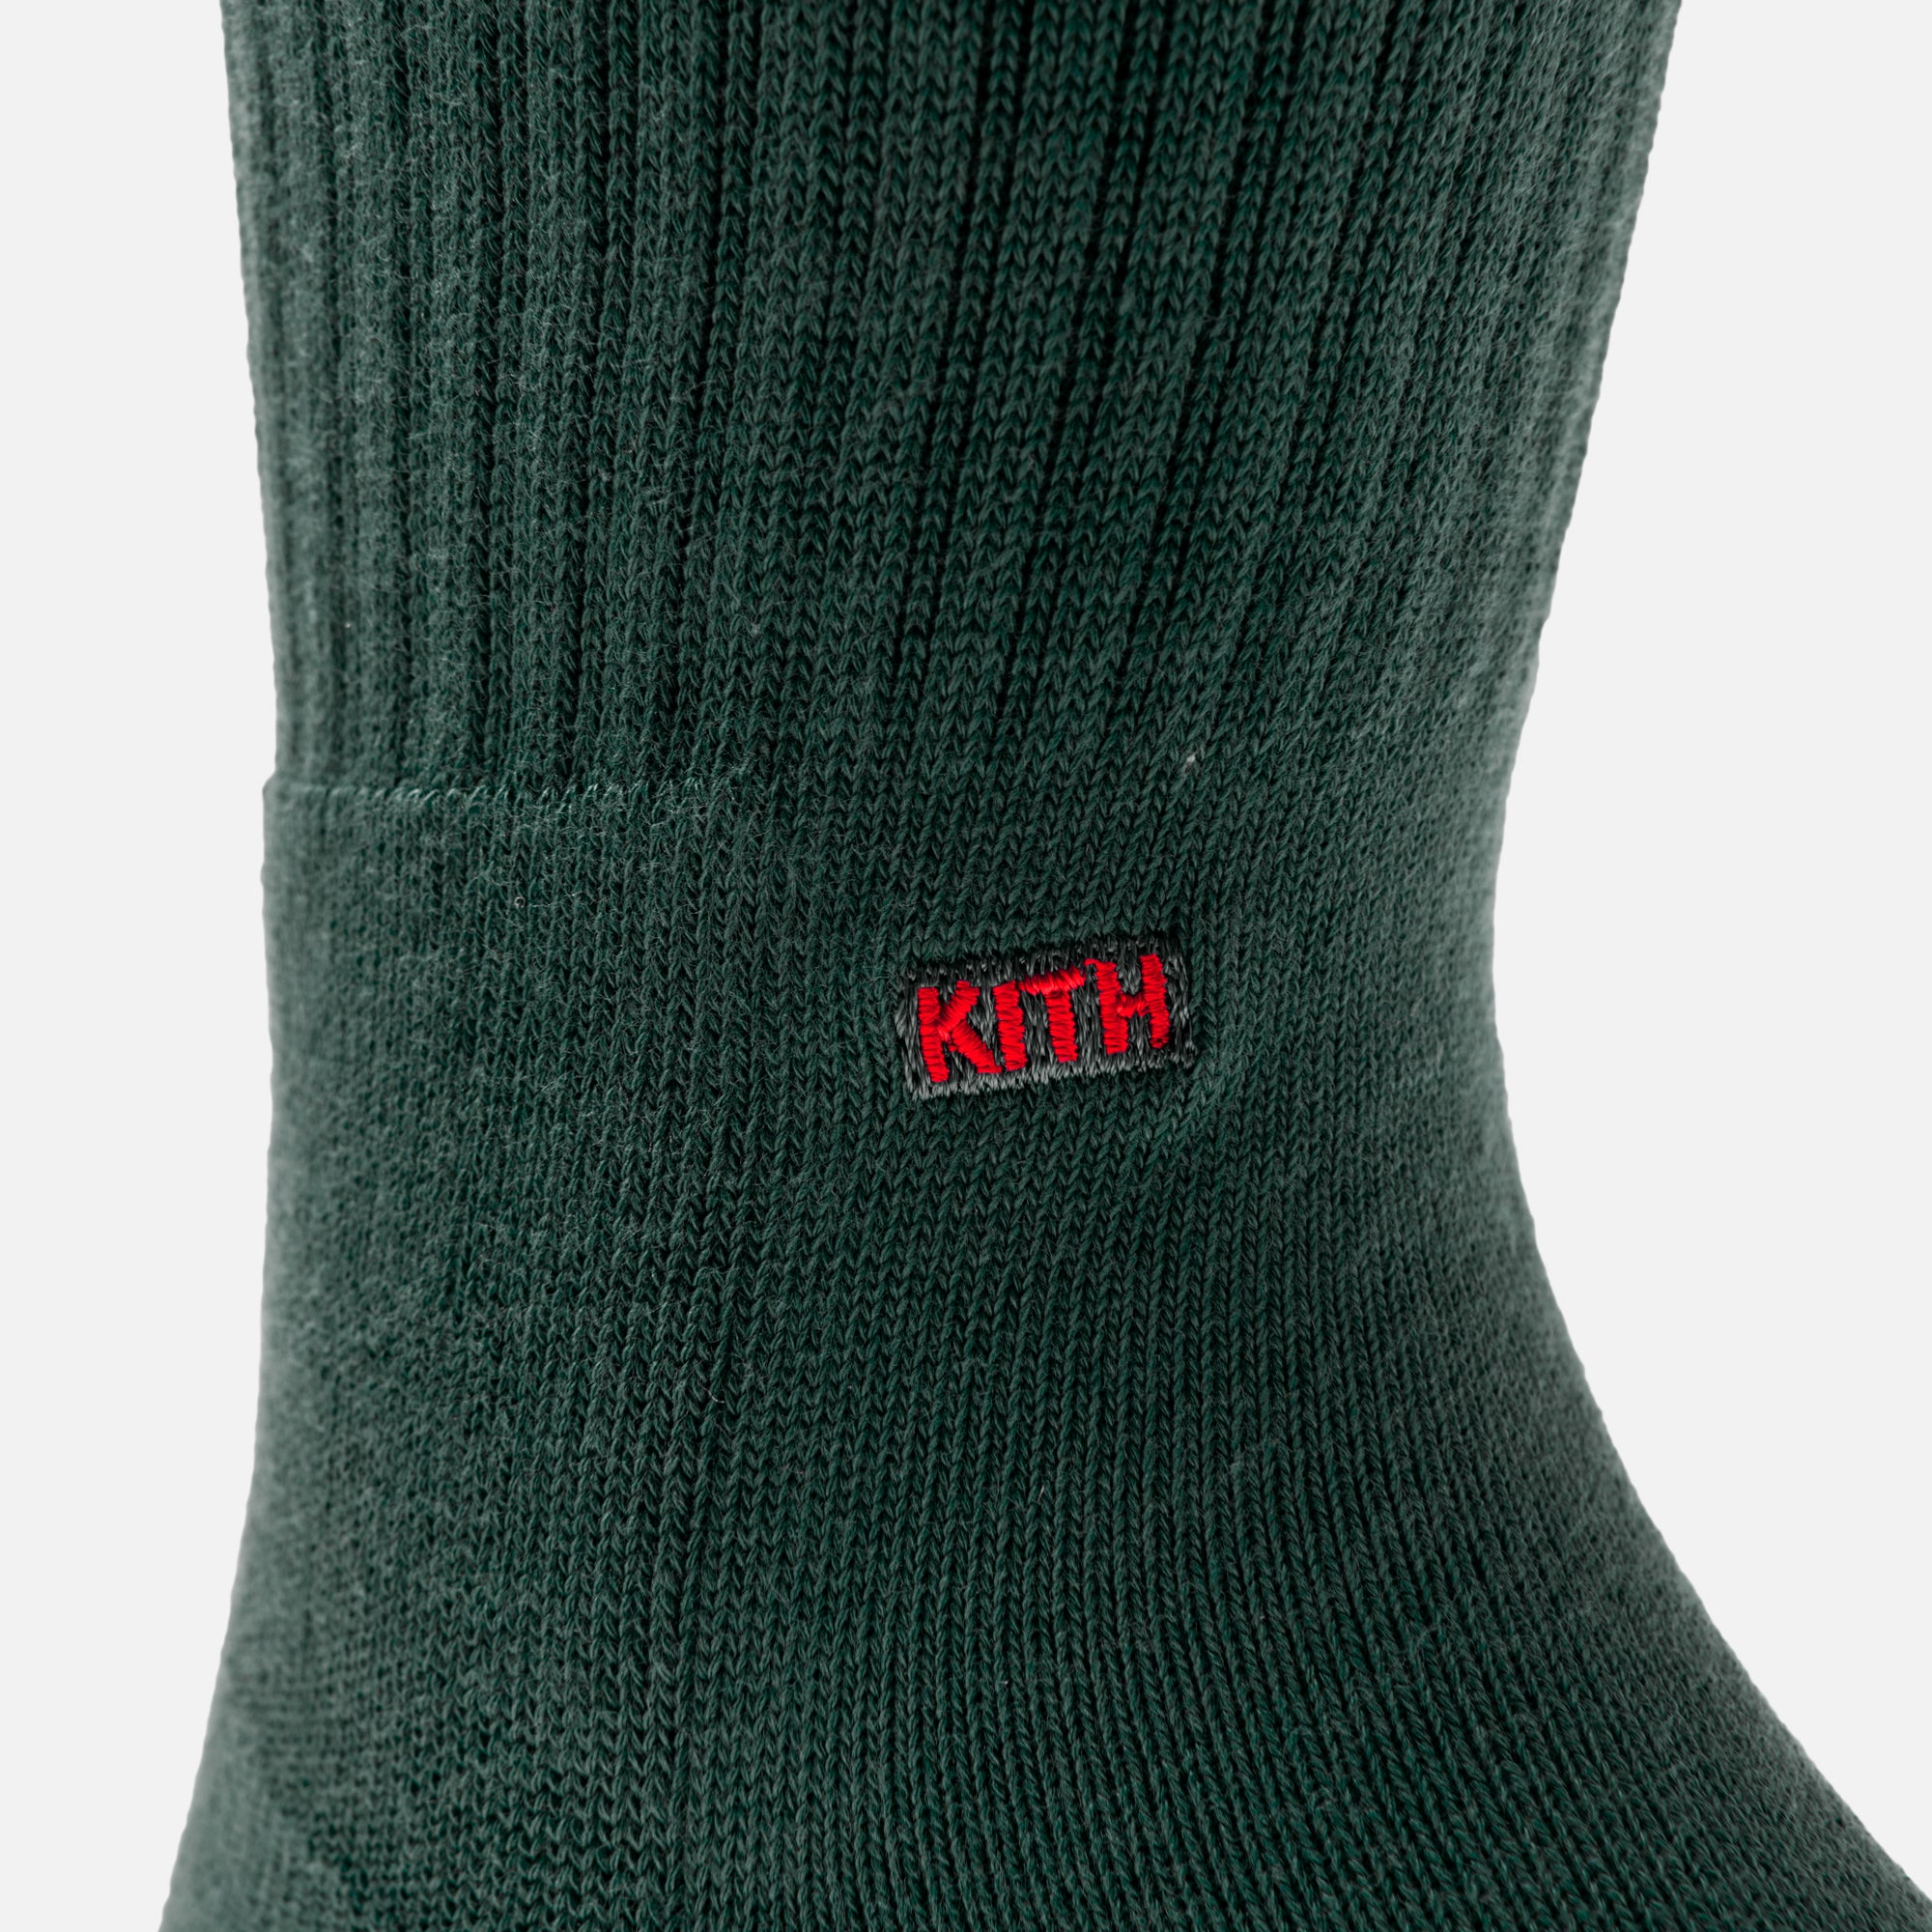 Kith x Coca-Cola x Stance Crew Sock - Green / Red